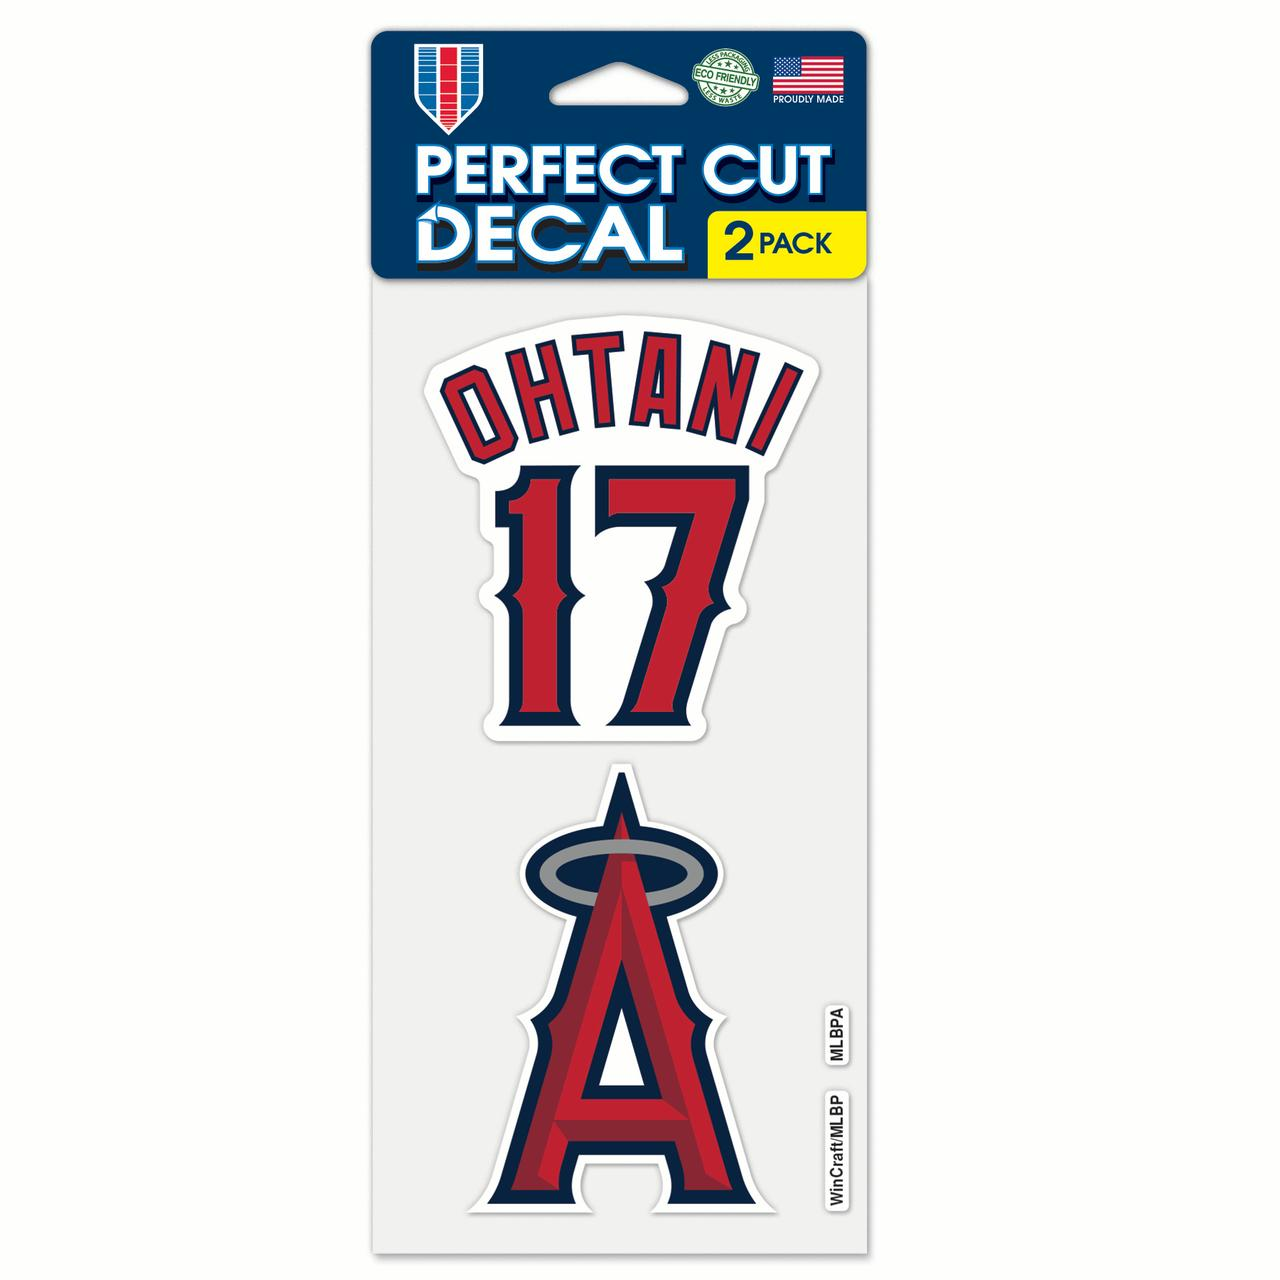 Shohei Ohtani Los Angeles Angels WinCraft 2-Pack Perfect Cut Player Decal Set - No Size